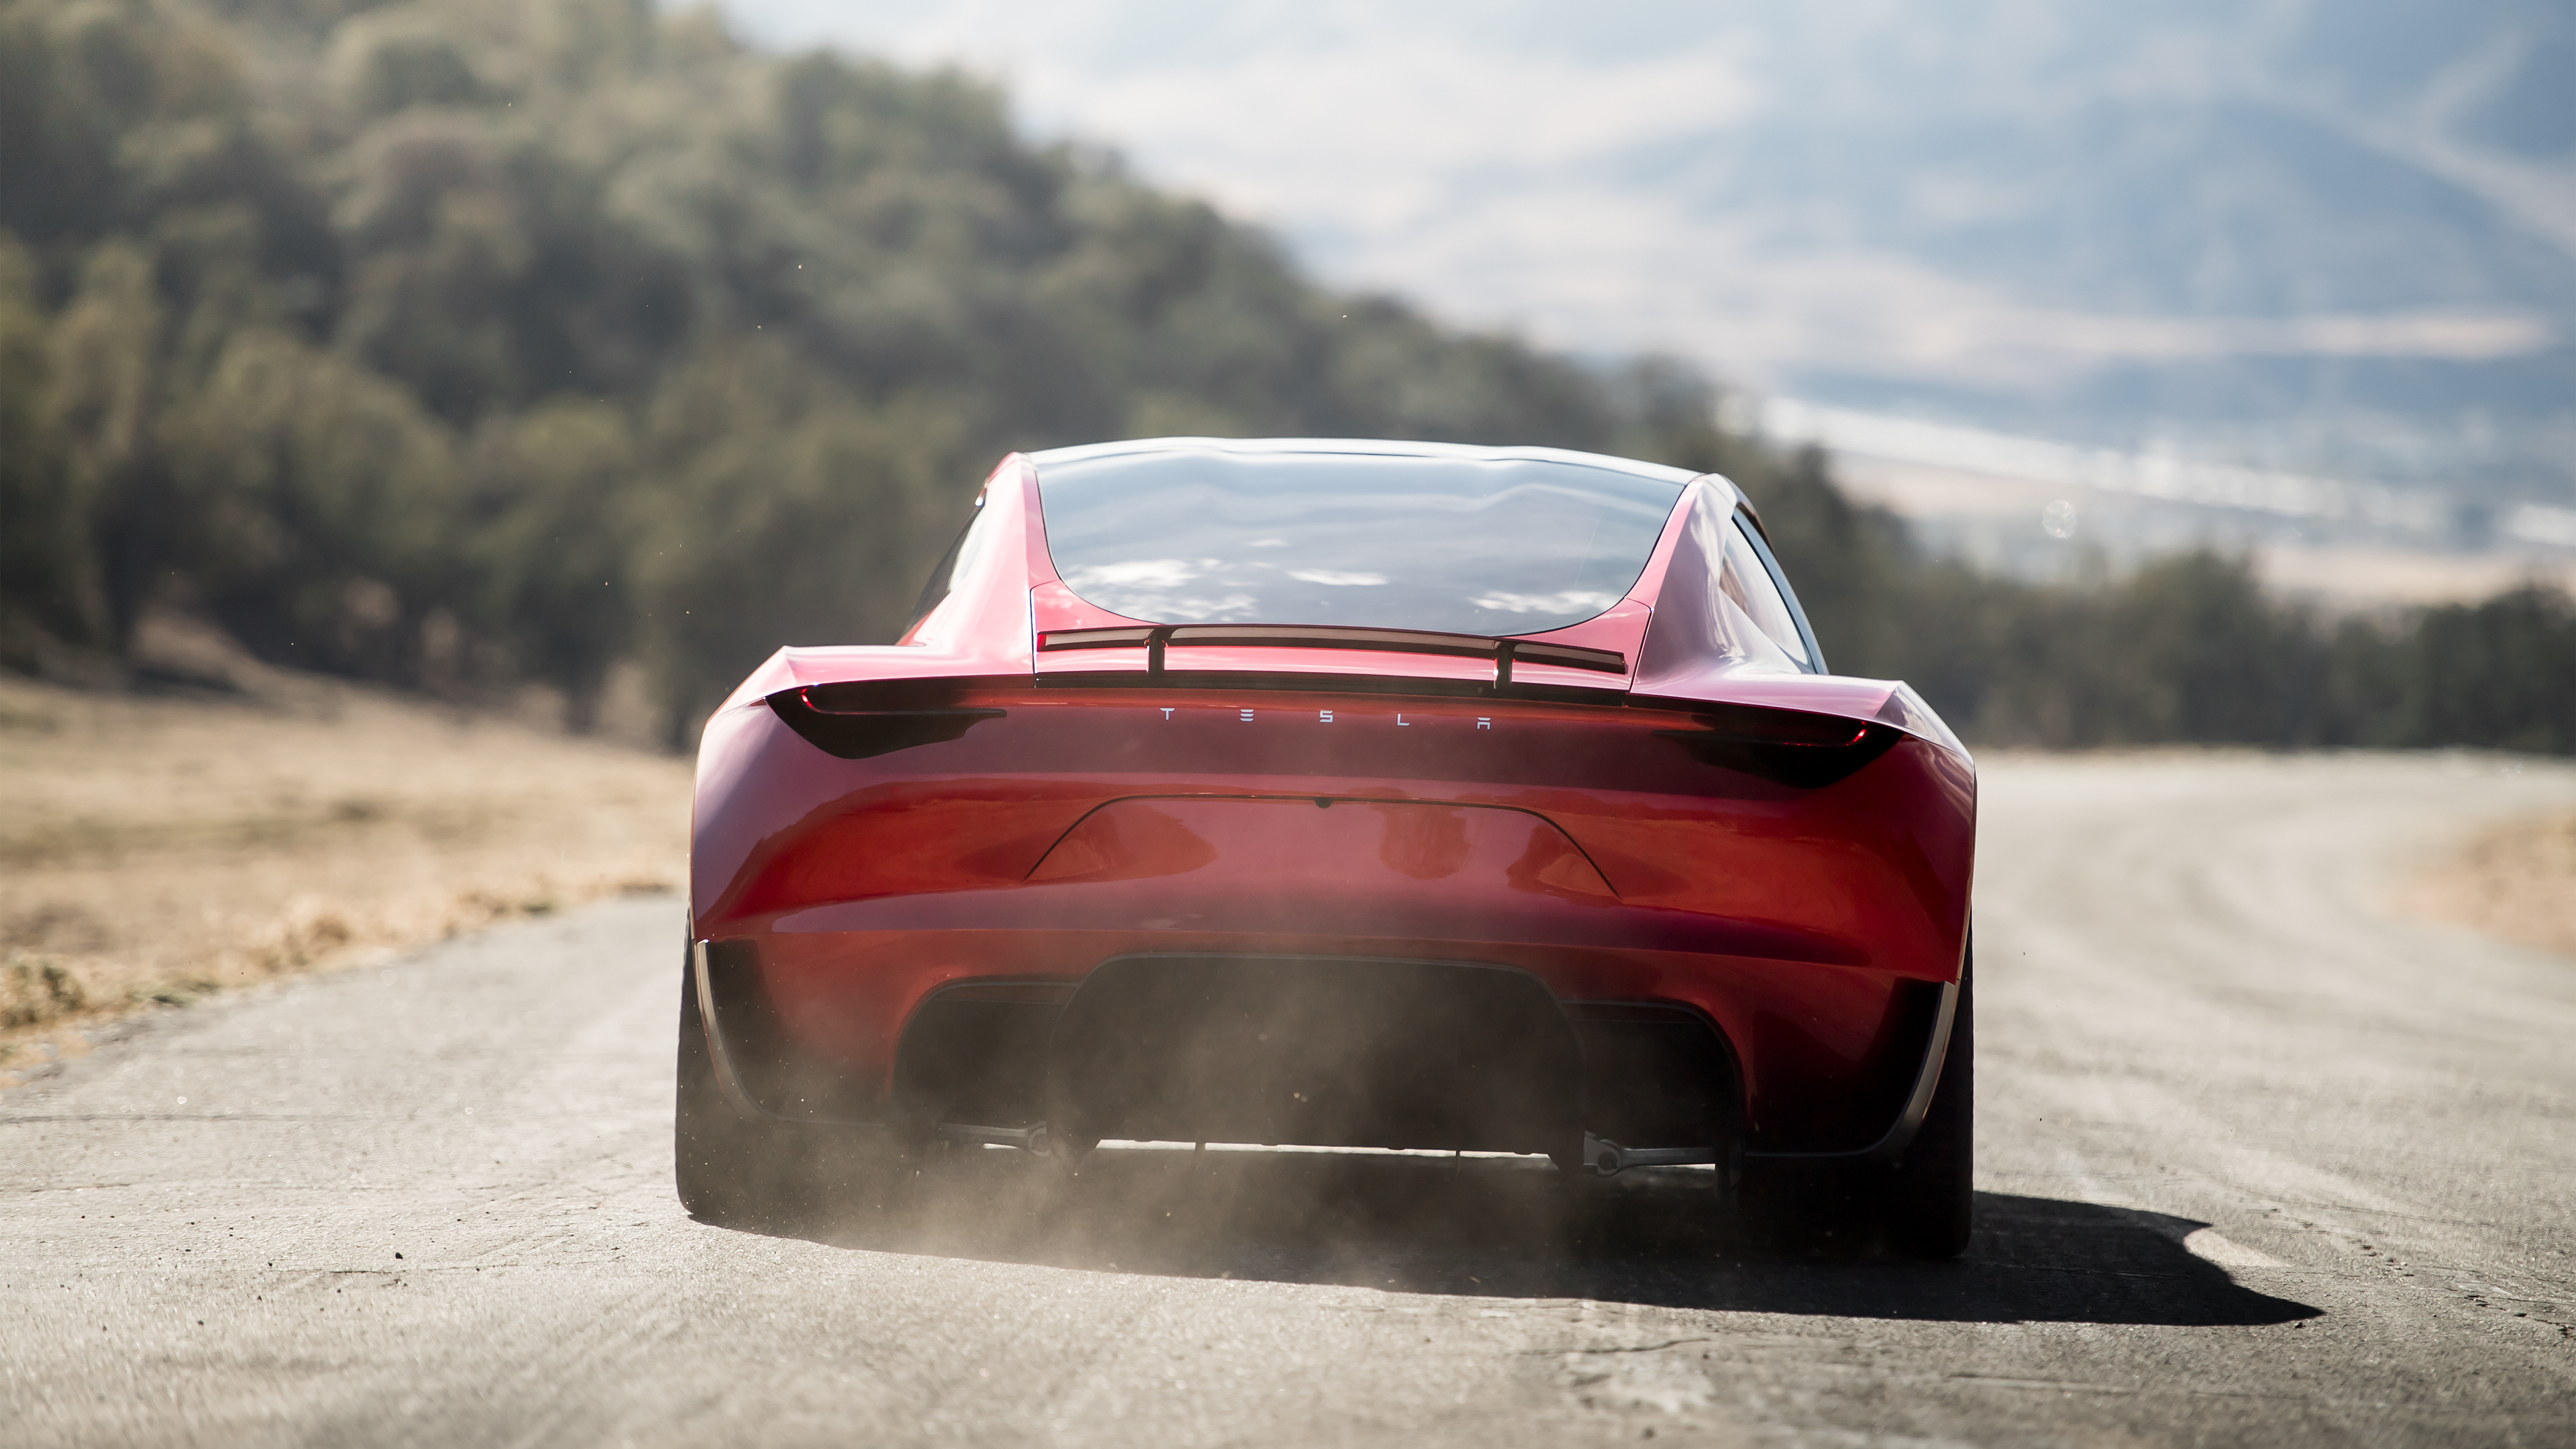 Tesla Roadster 2017 Fastest Car World further Hyundai Wallpaper Logo besides Bentley additionally Lexus Is 300h further 1962 CHEVROLET CORVETTE CUSTOM CRC CONVERSION 162919. on aston martin coupe